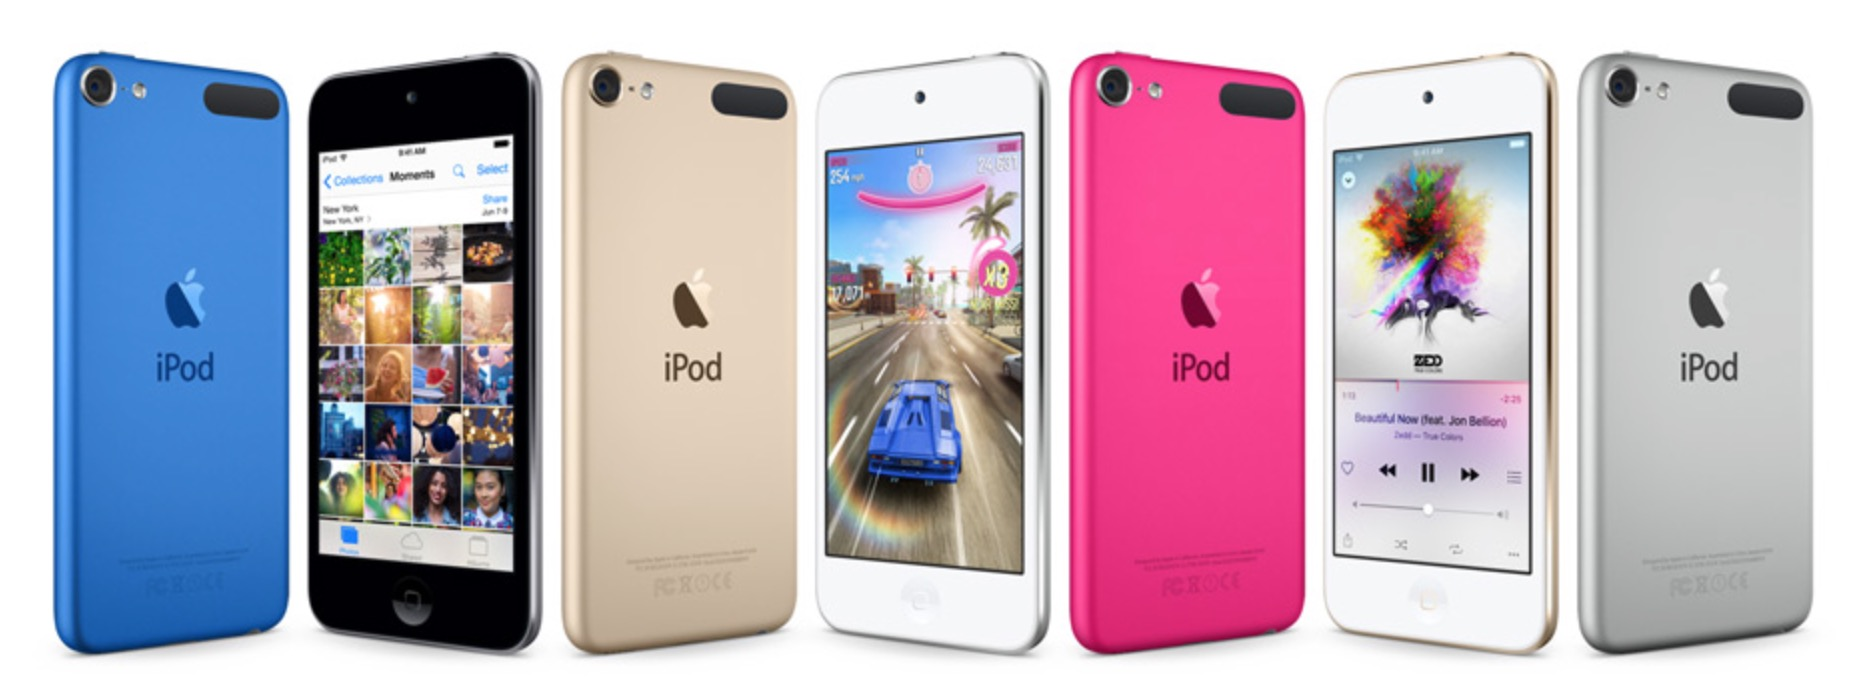 iPod Touch - 6th Generation